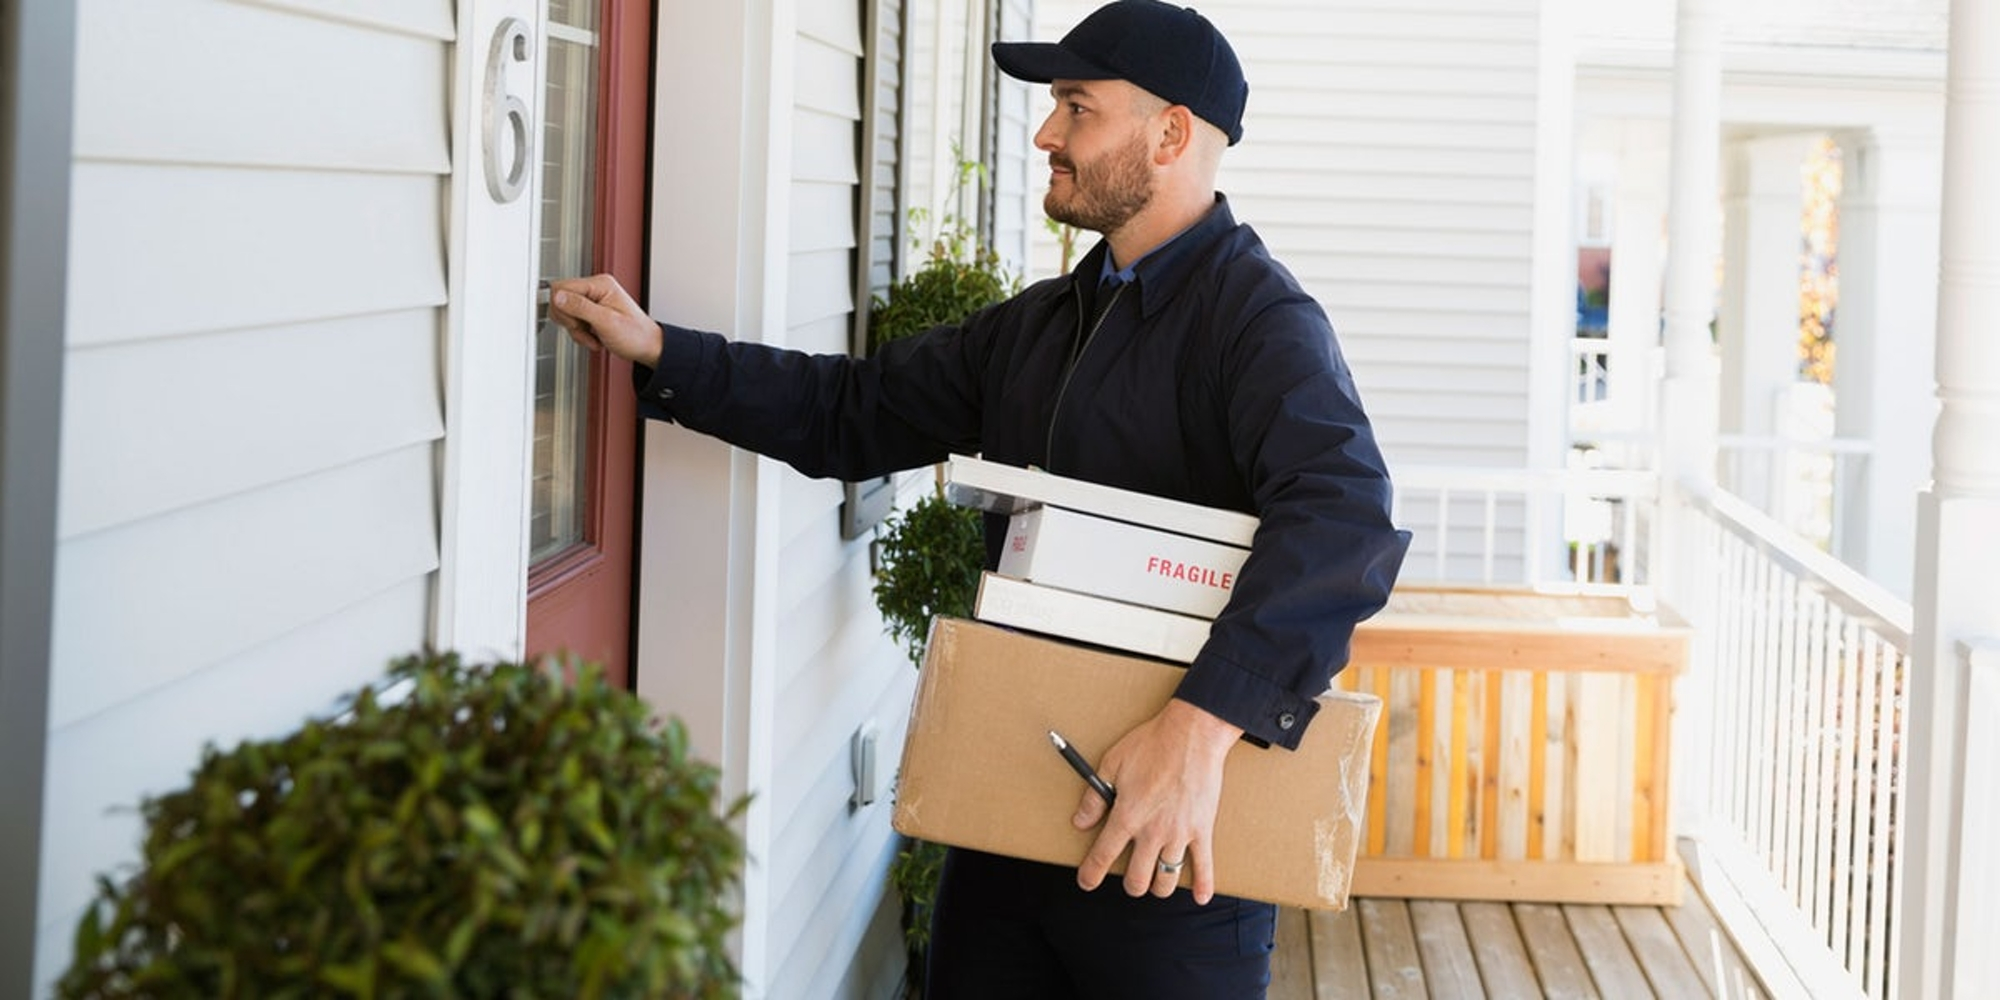 Dank by Delivery: Can I Legally Order Weed Online?